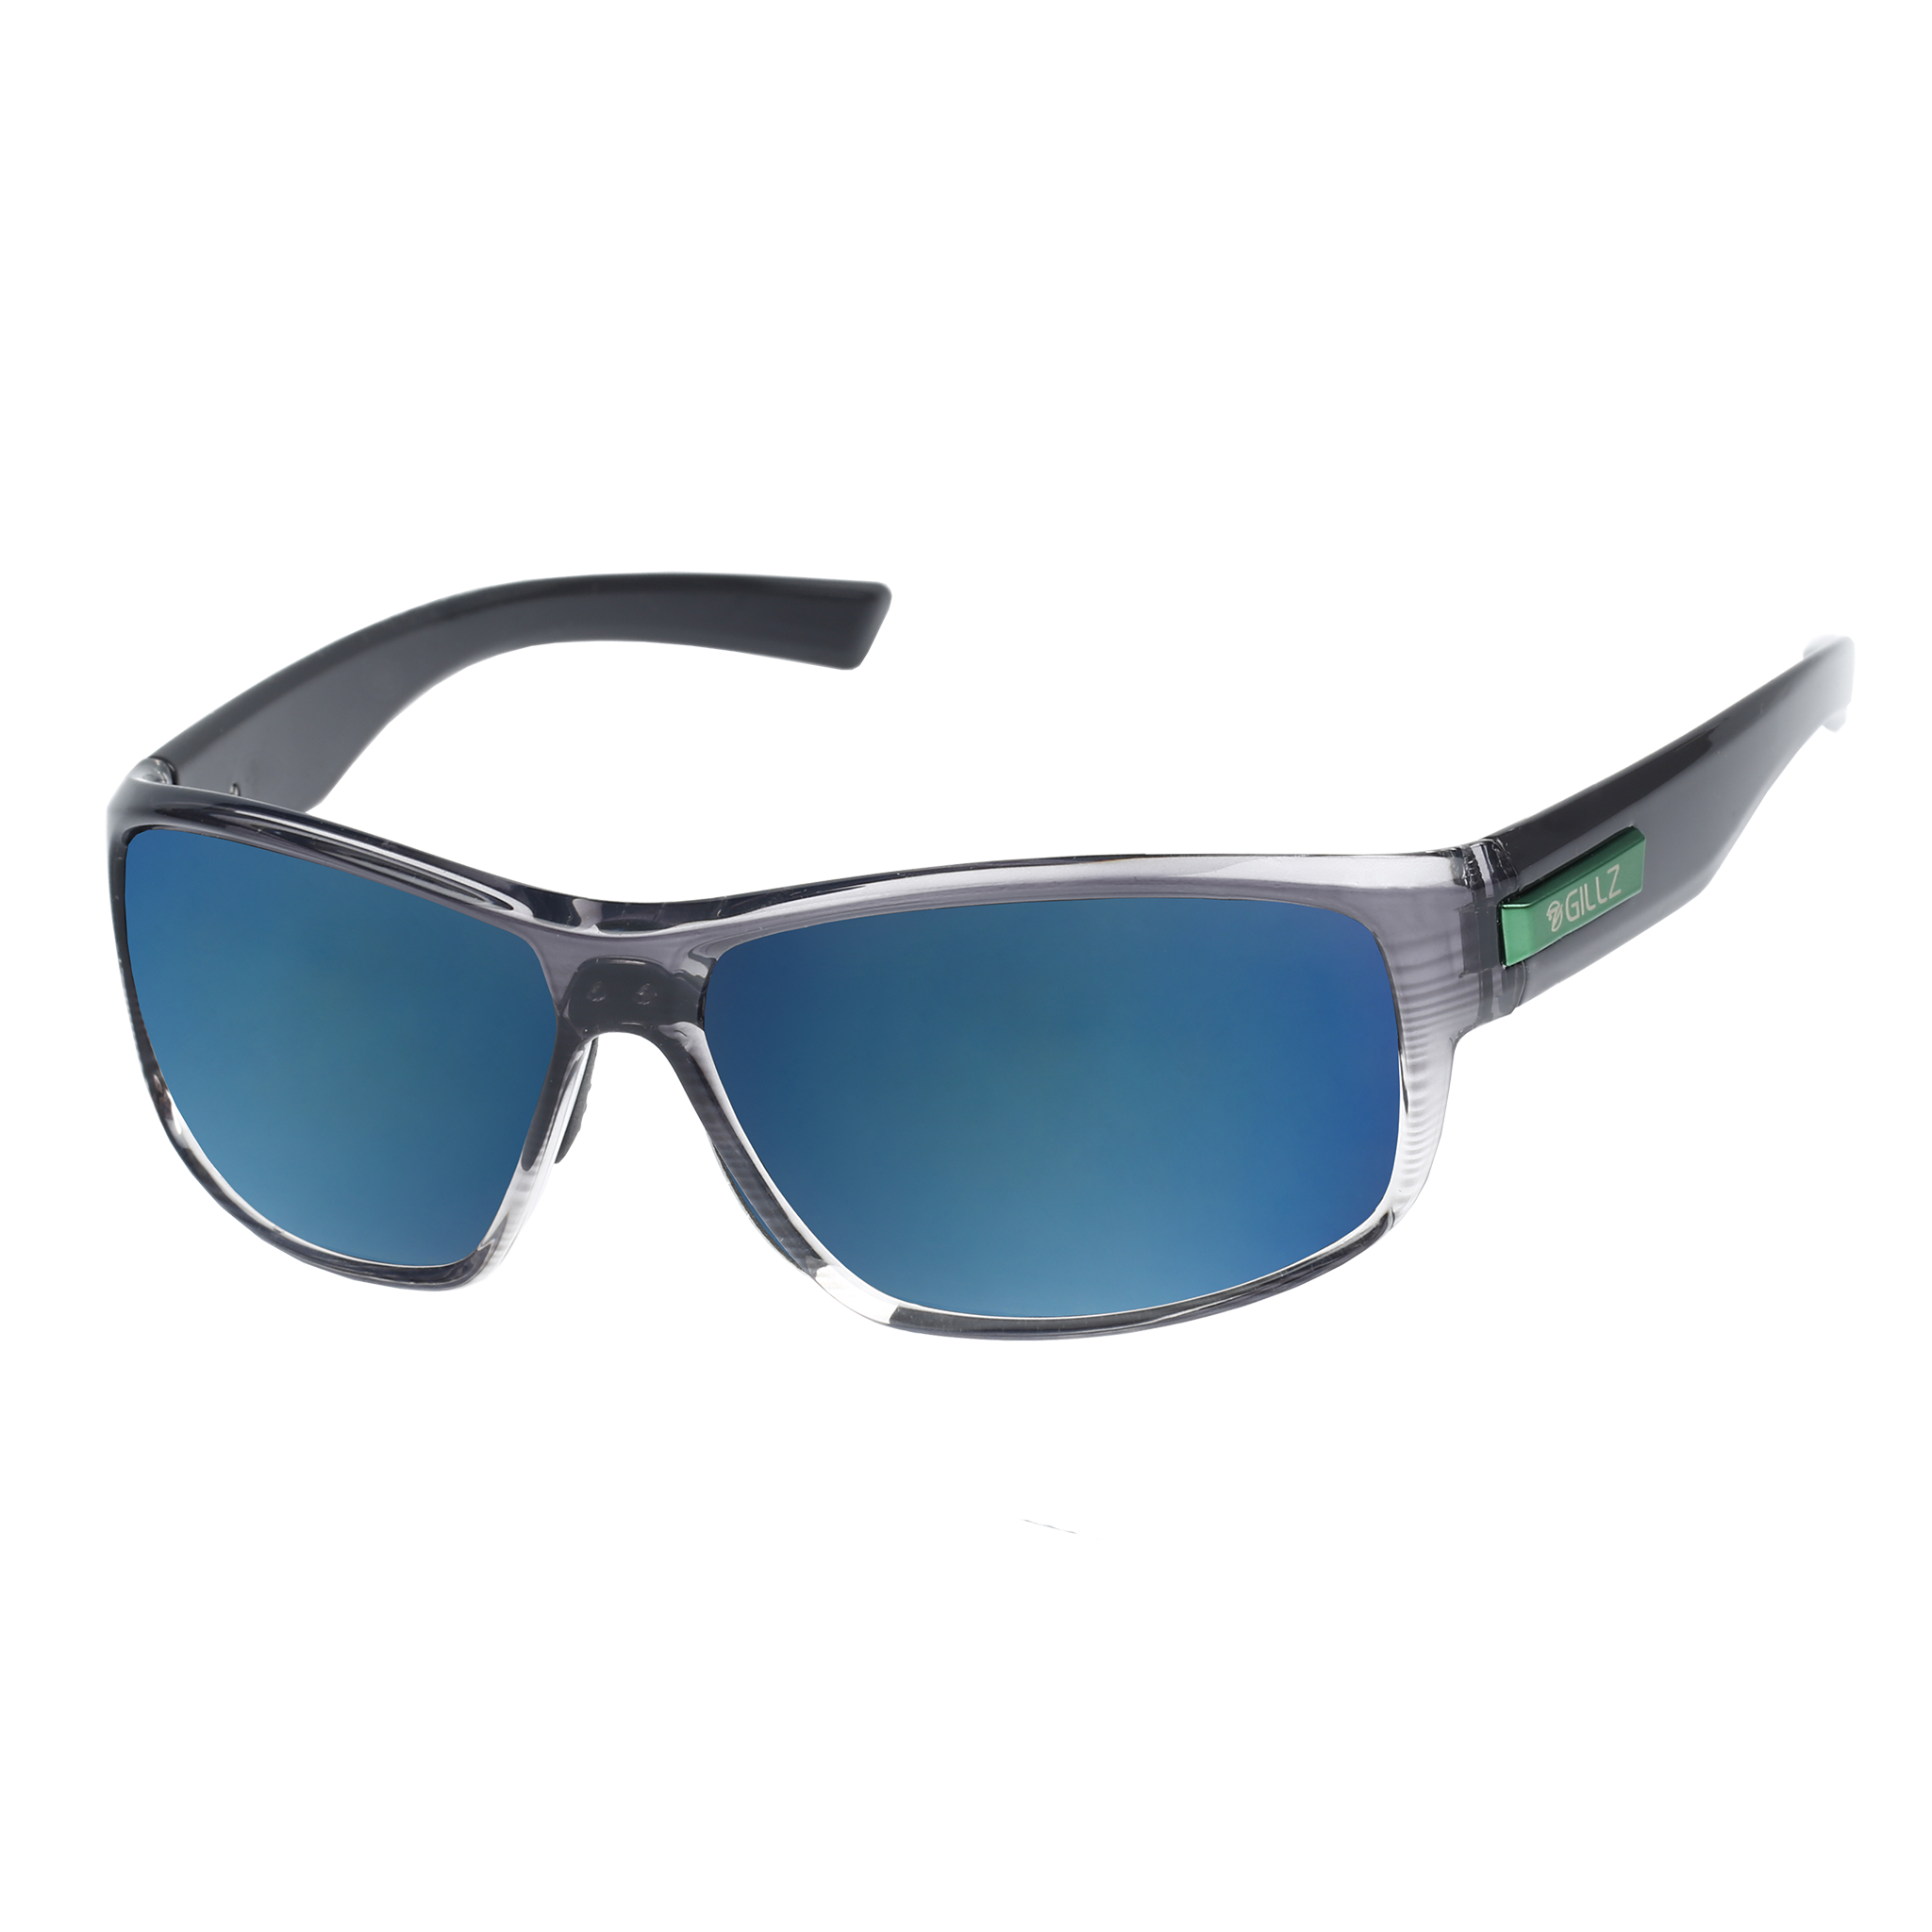 Goggles transparent water. Gillzlenz classic fishing sunglasses